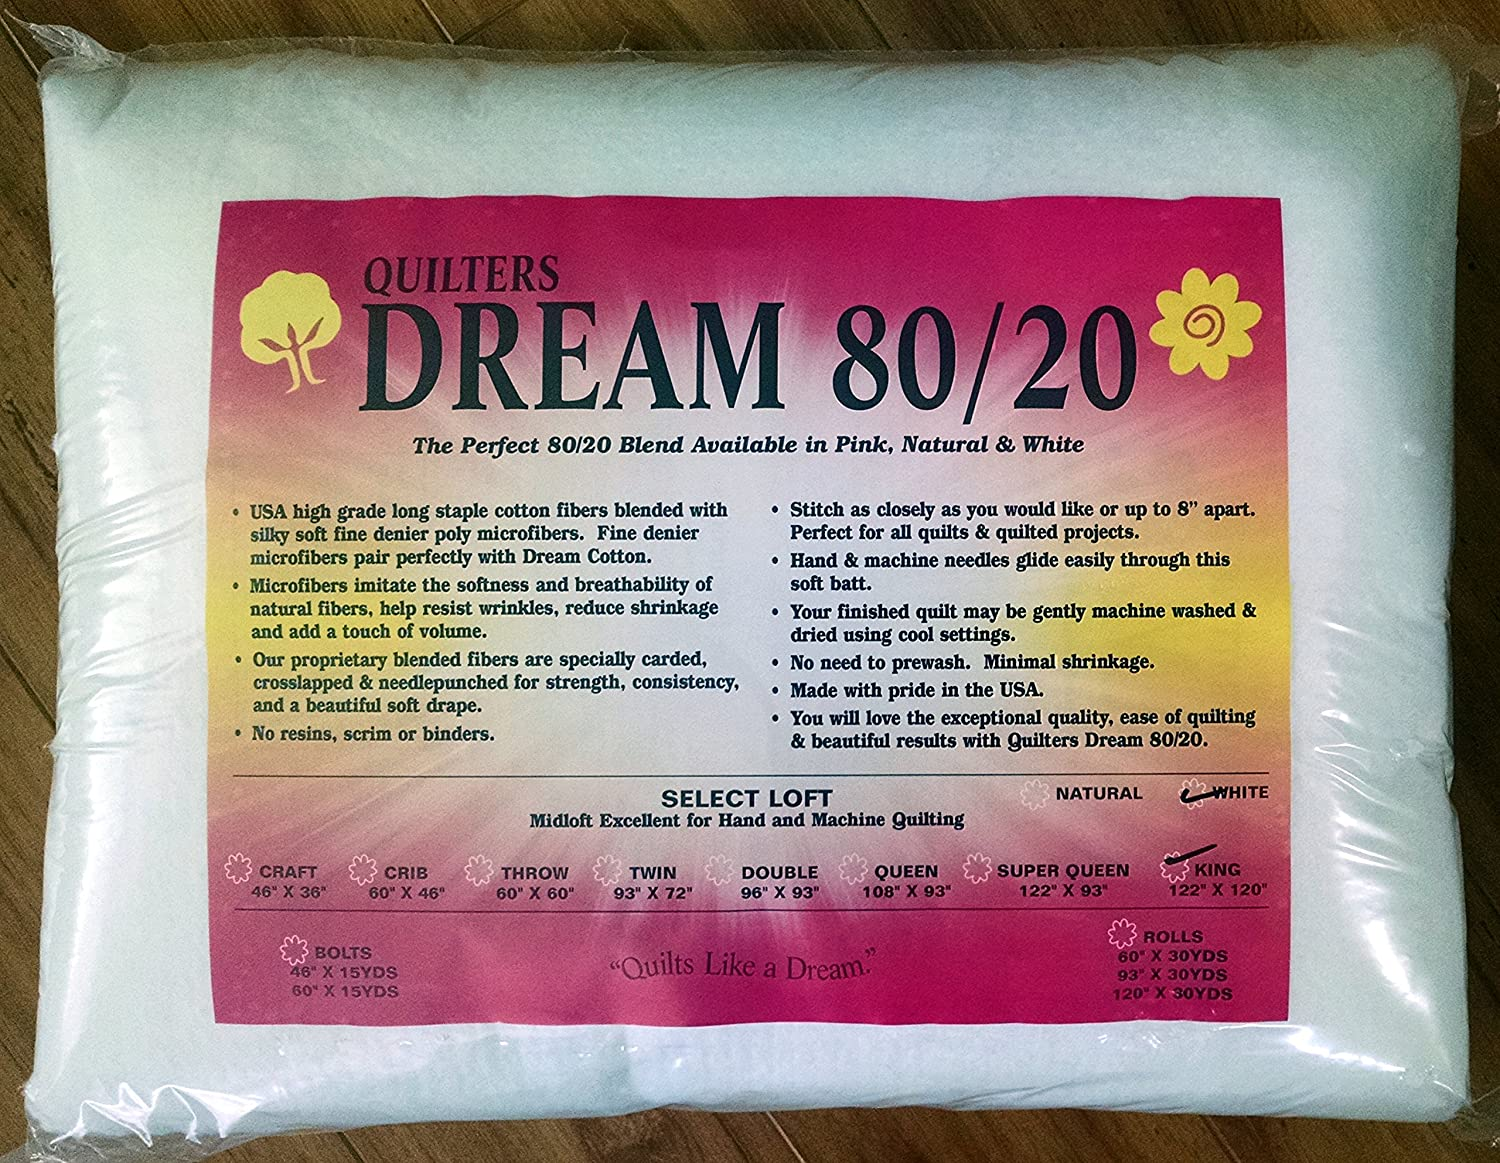 Quilter's Dream 80/20, White, Select Loft Batting - King Size 122X120 Quilter' s Dream 80/20 EWK